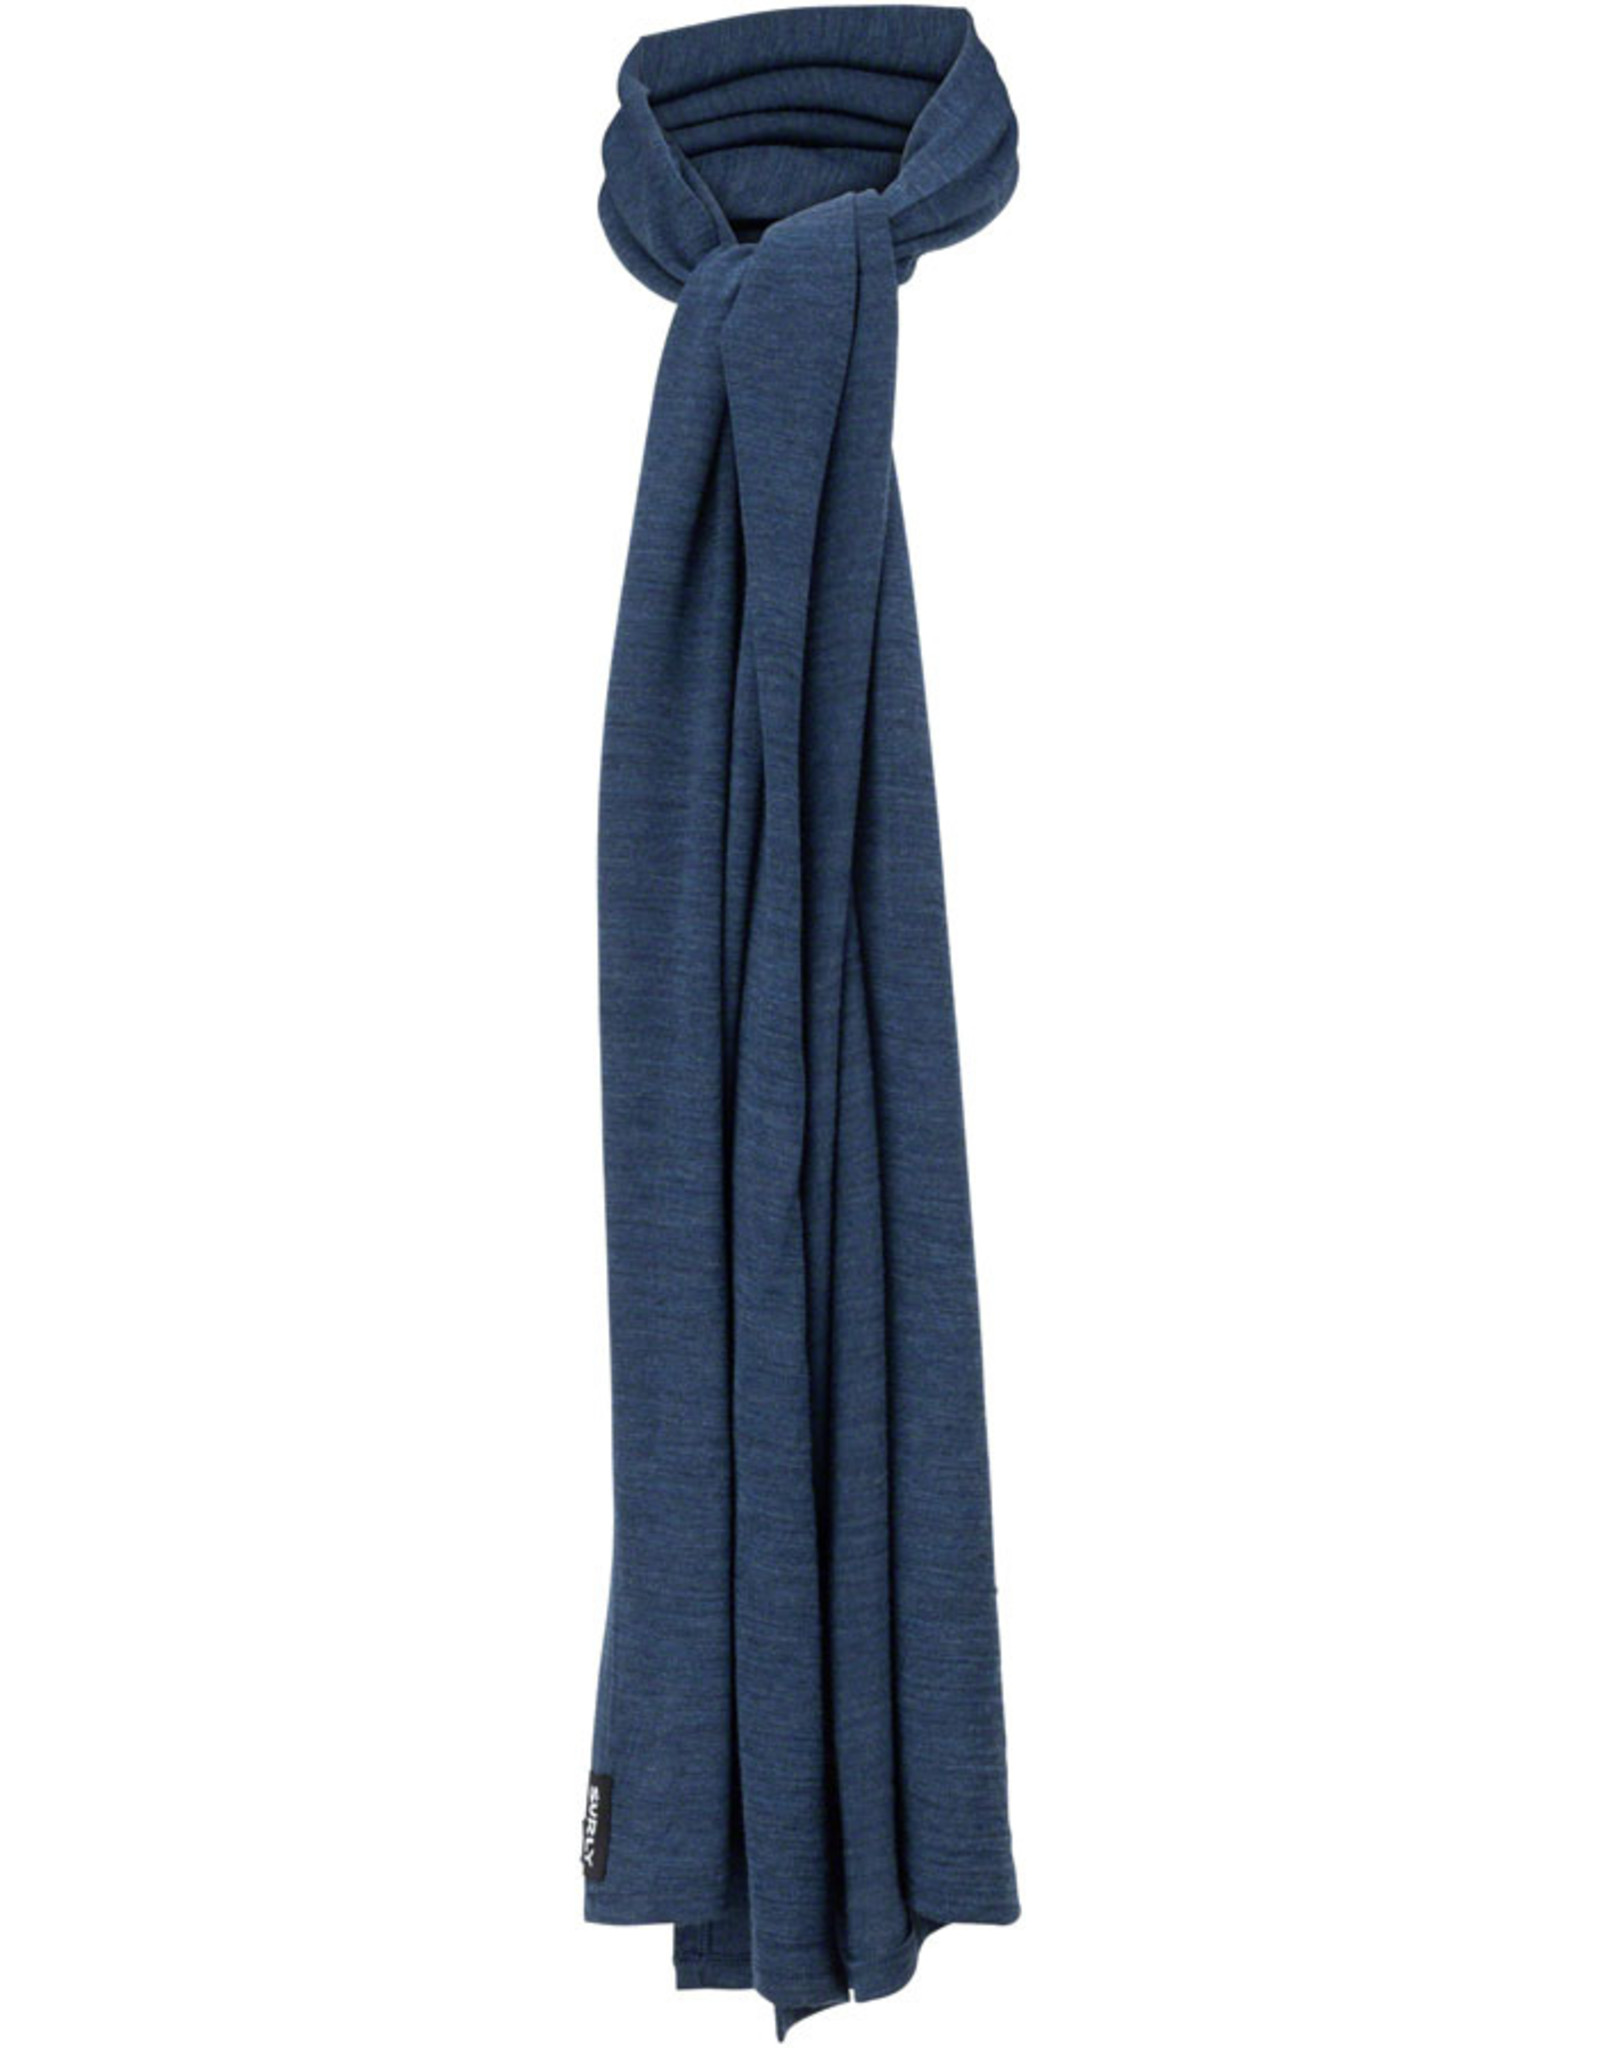 Surly Surly Merino Scarf - Blue One Size